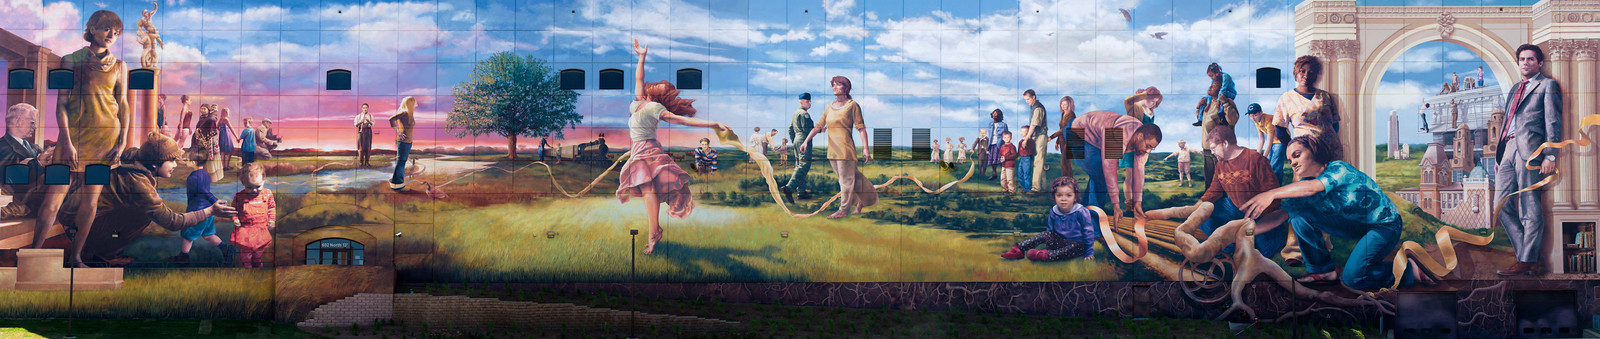 Mural on the side of a building in downtown Omaha.  This is a panorama consisting of 12 individual shots combined in Photoshop.